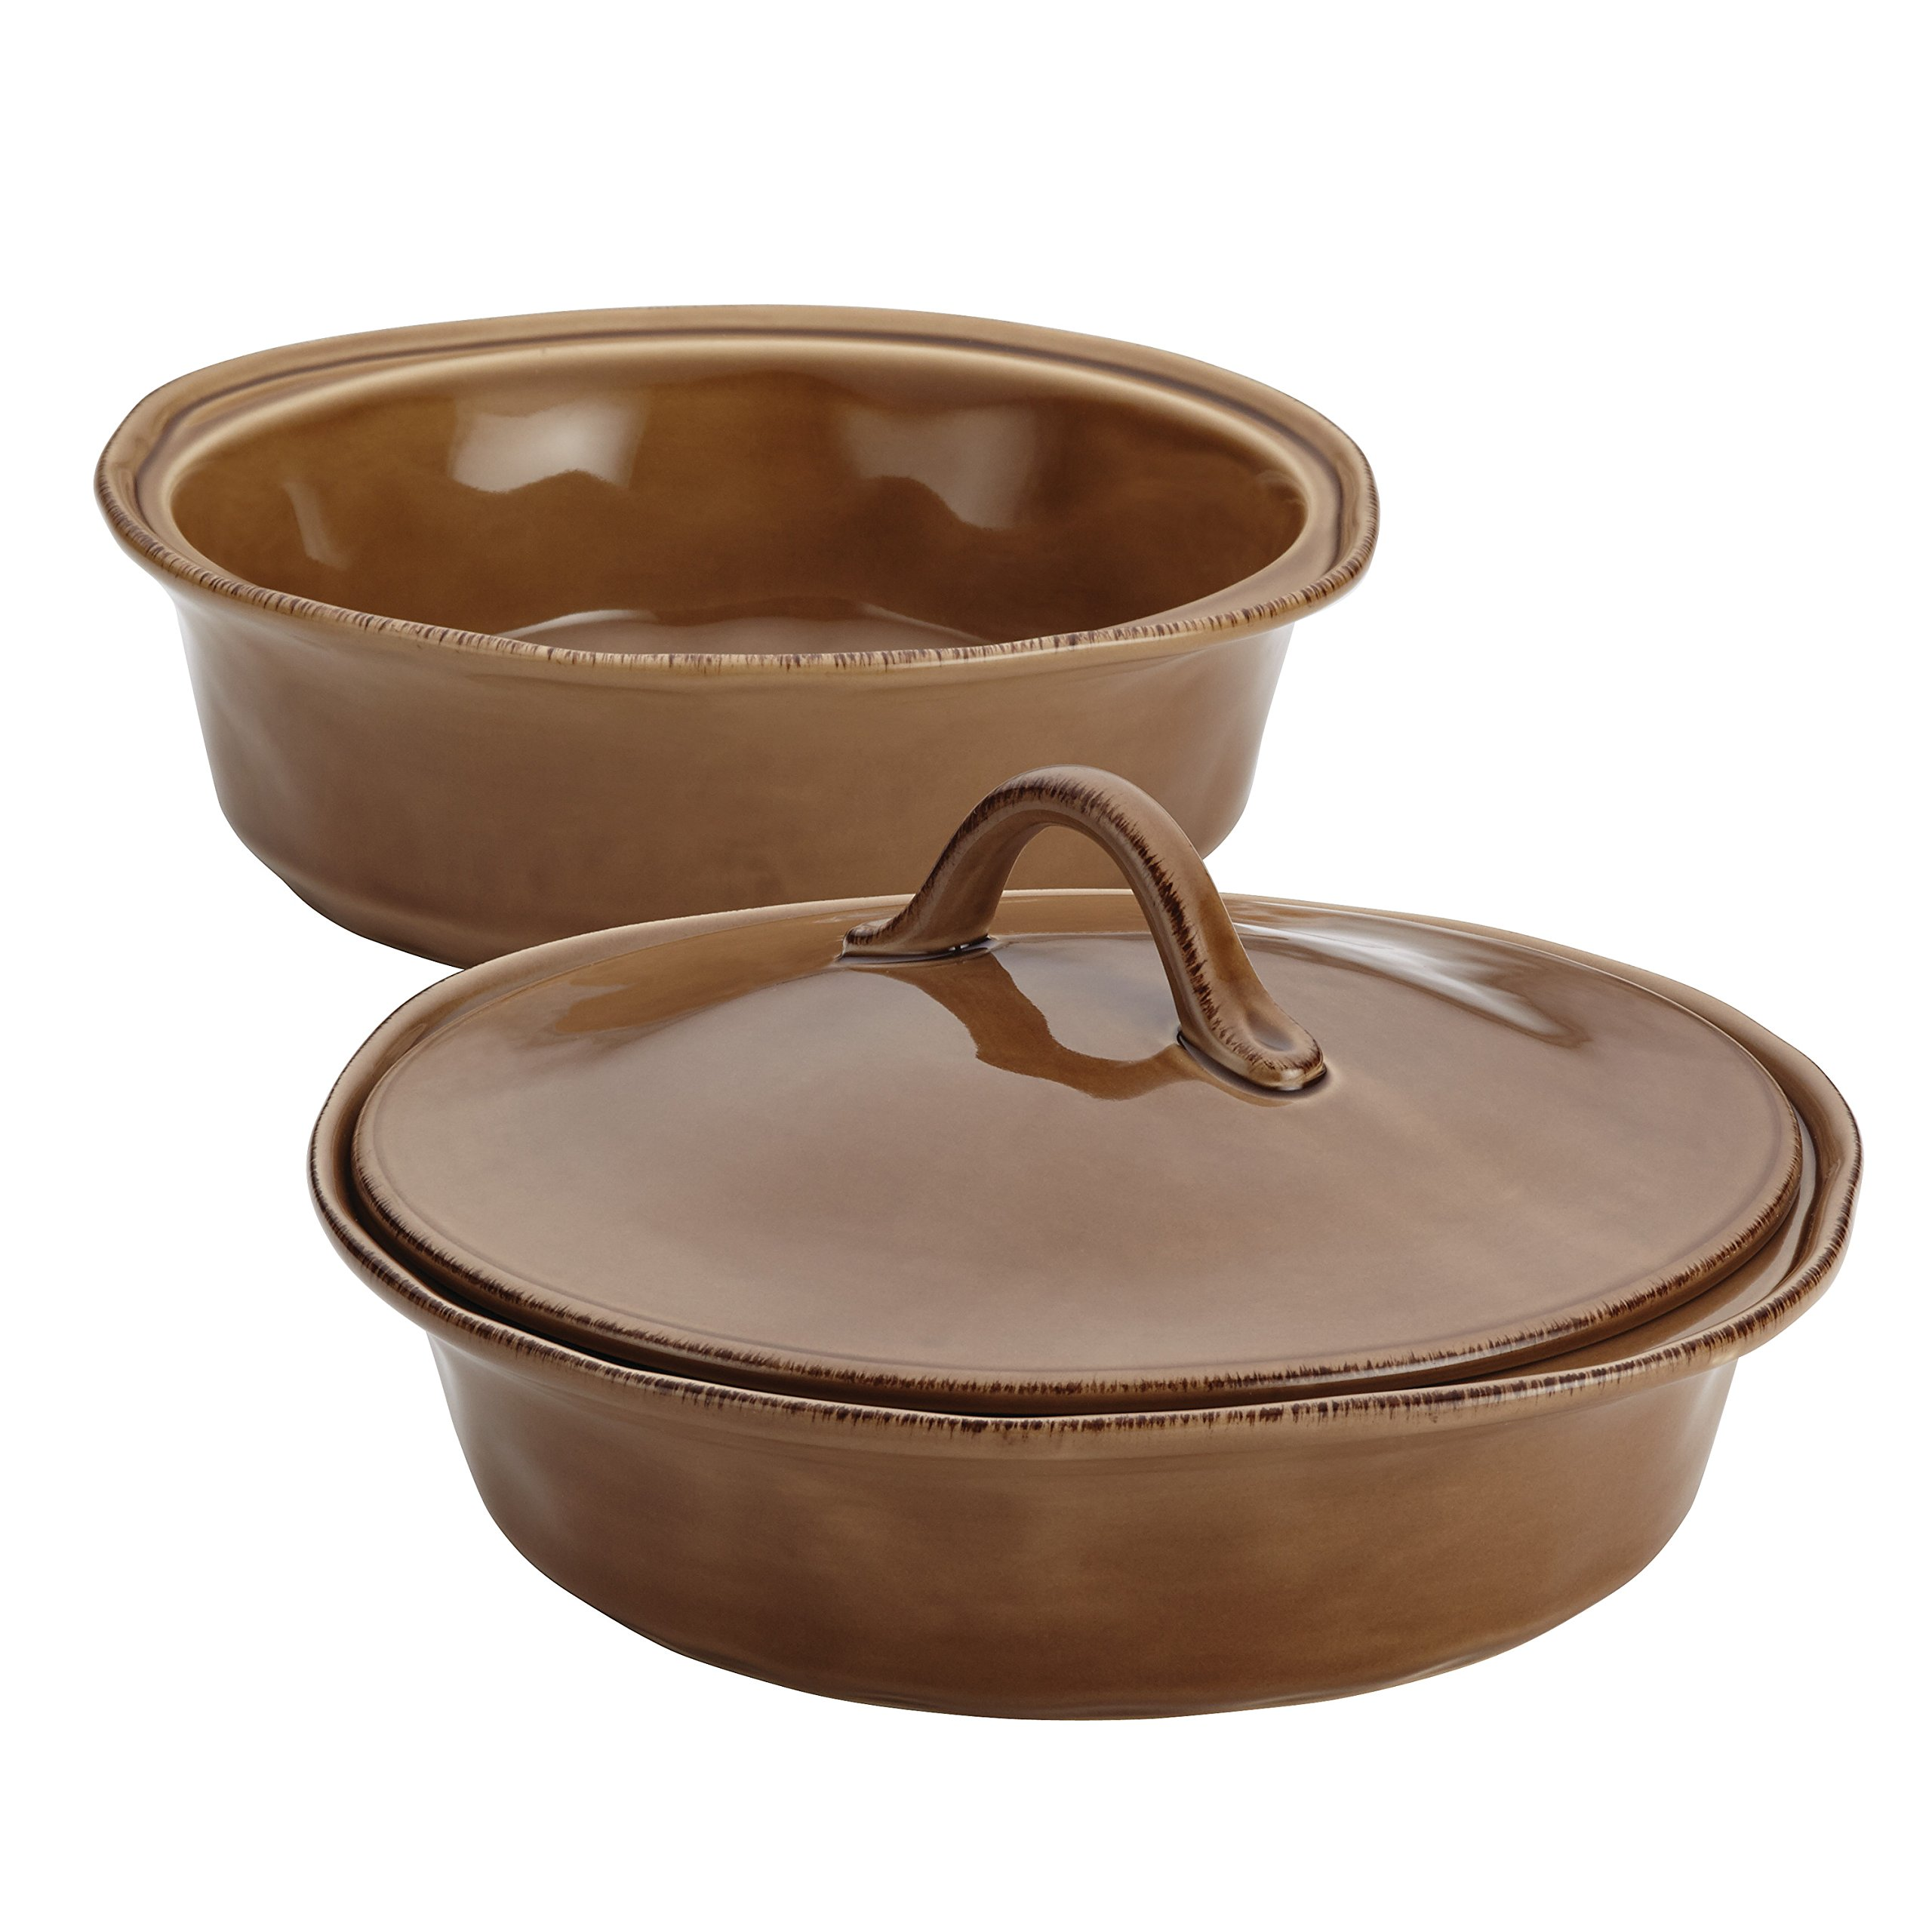 Rachael Ray 3-Piece Cucina Stoneware Round Baker and Lid Set, Mushroom Brown